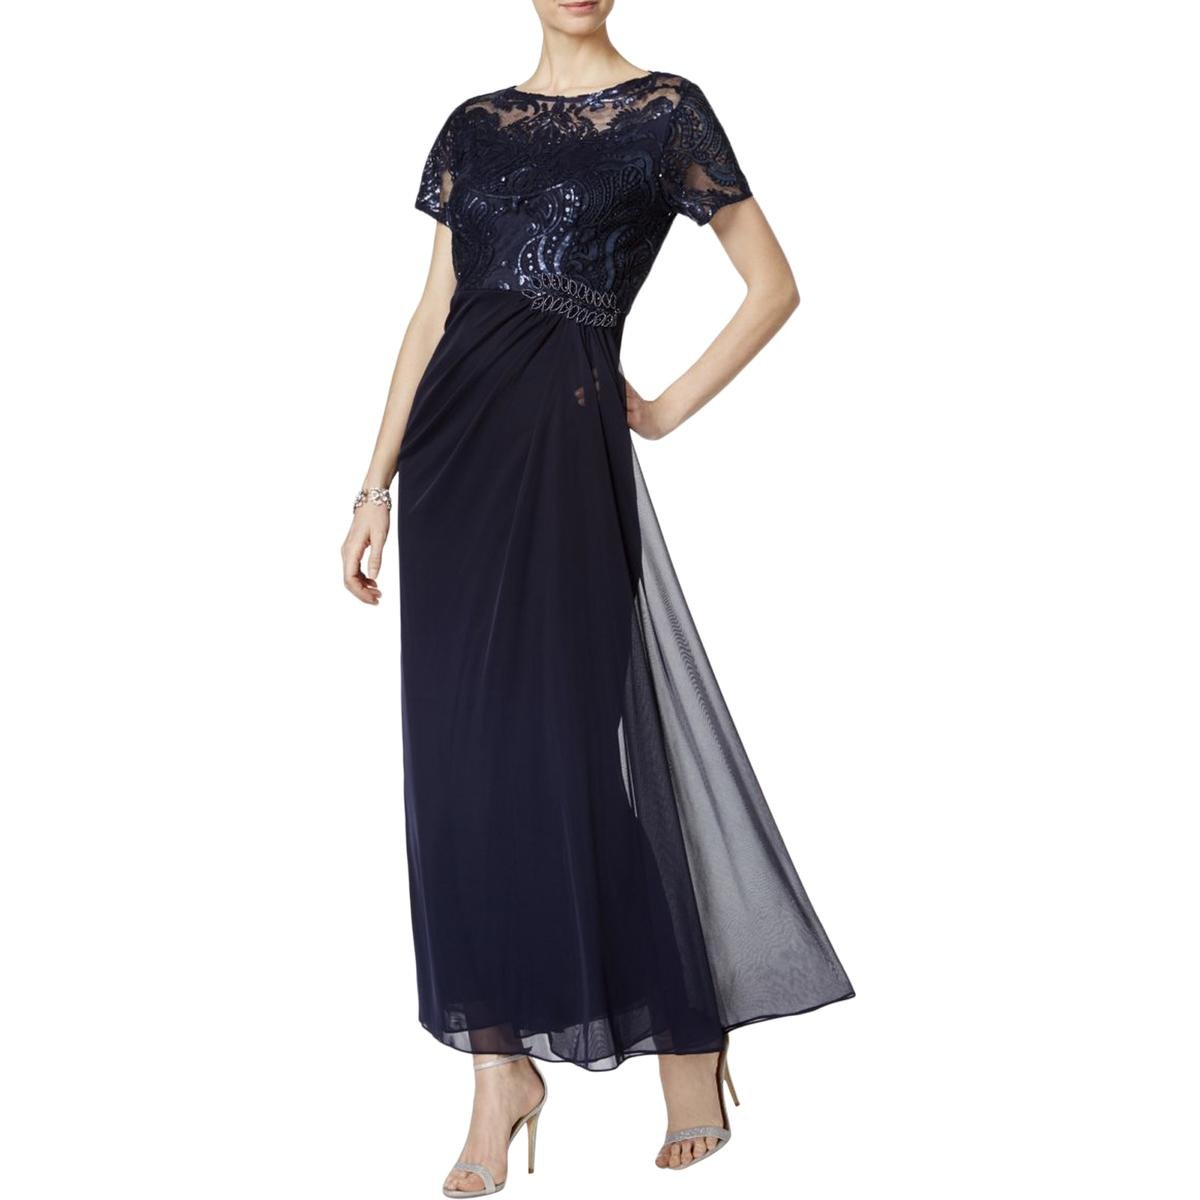 d9527f92ad1c2 Our long side ruched waist evening gown features a short sleeve illusion  embroidered bodice with a beaded applique at side hip. This is the perfect  dress ...